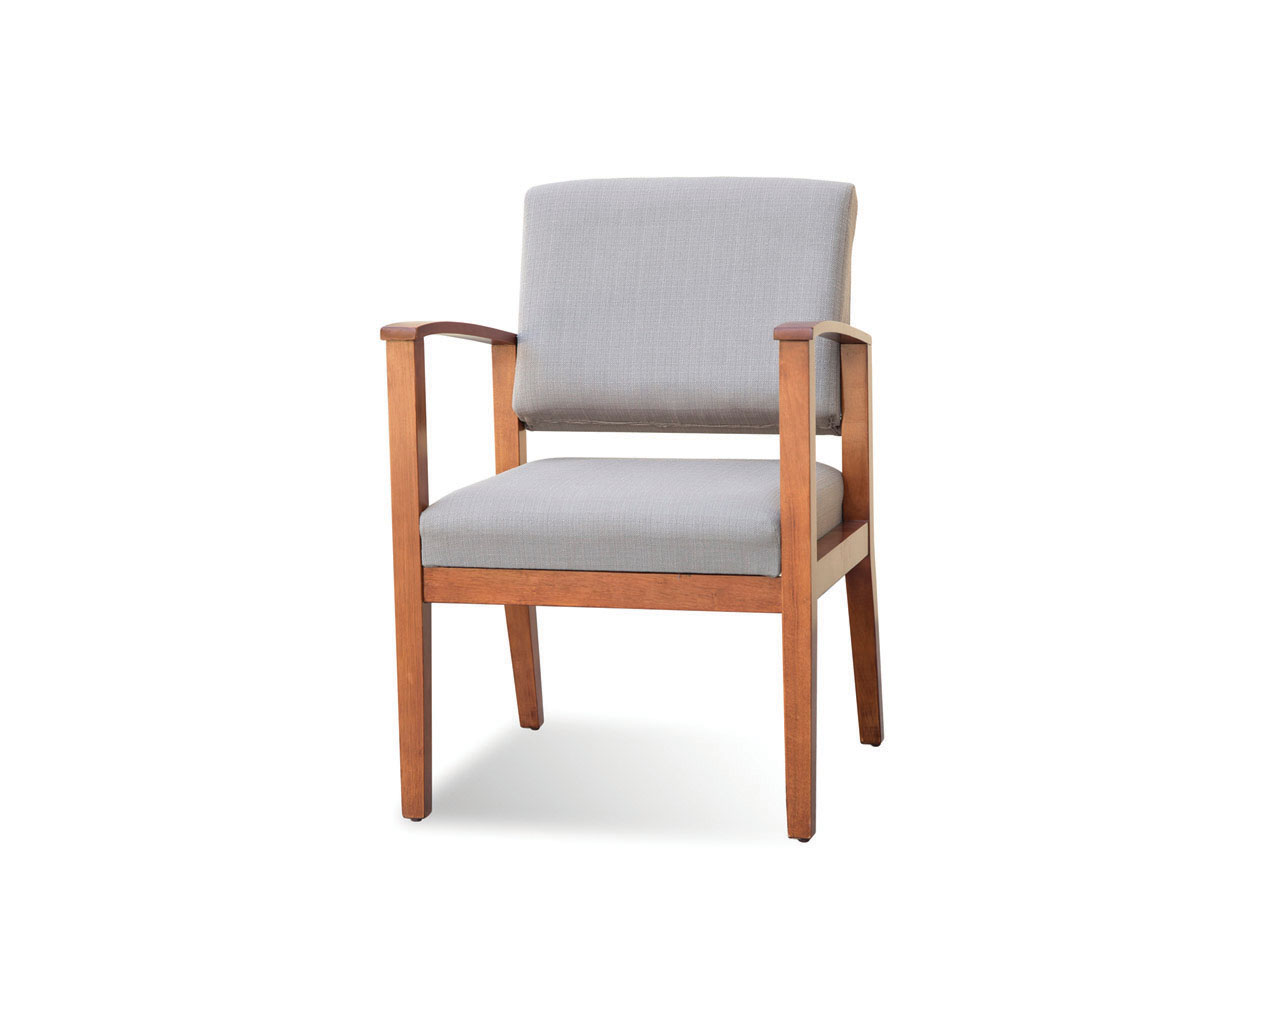 Morley Chair in Taupe Fabric and Cherry Frame